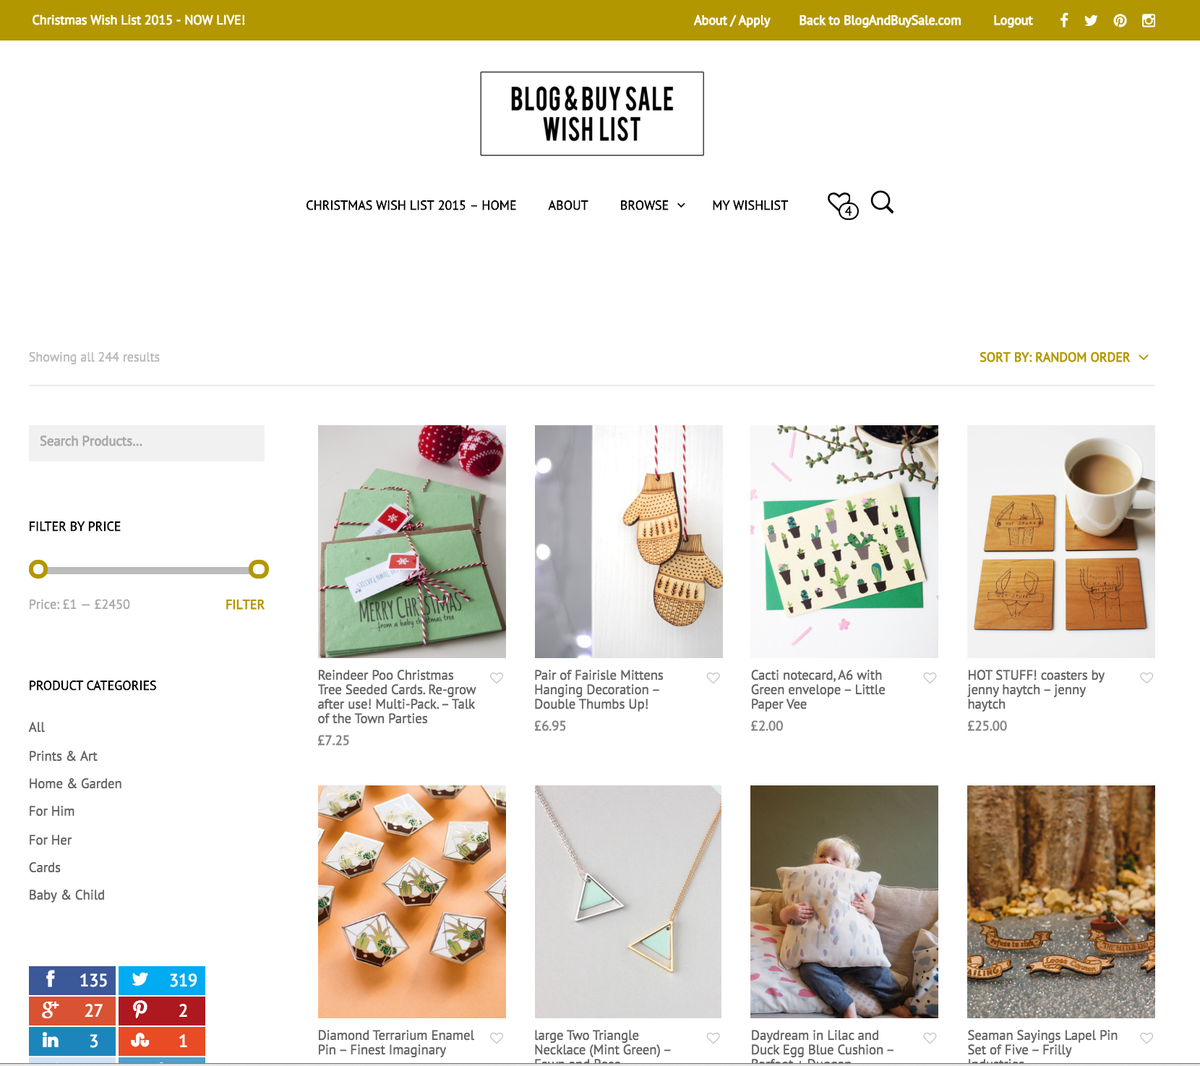 Our Christmas Wish List is now LIVE! Inc over 200 products from talented designers/makers | https://t.co/8jJR3Q4GOr https://t.co/rPnJYPrJCs